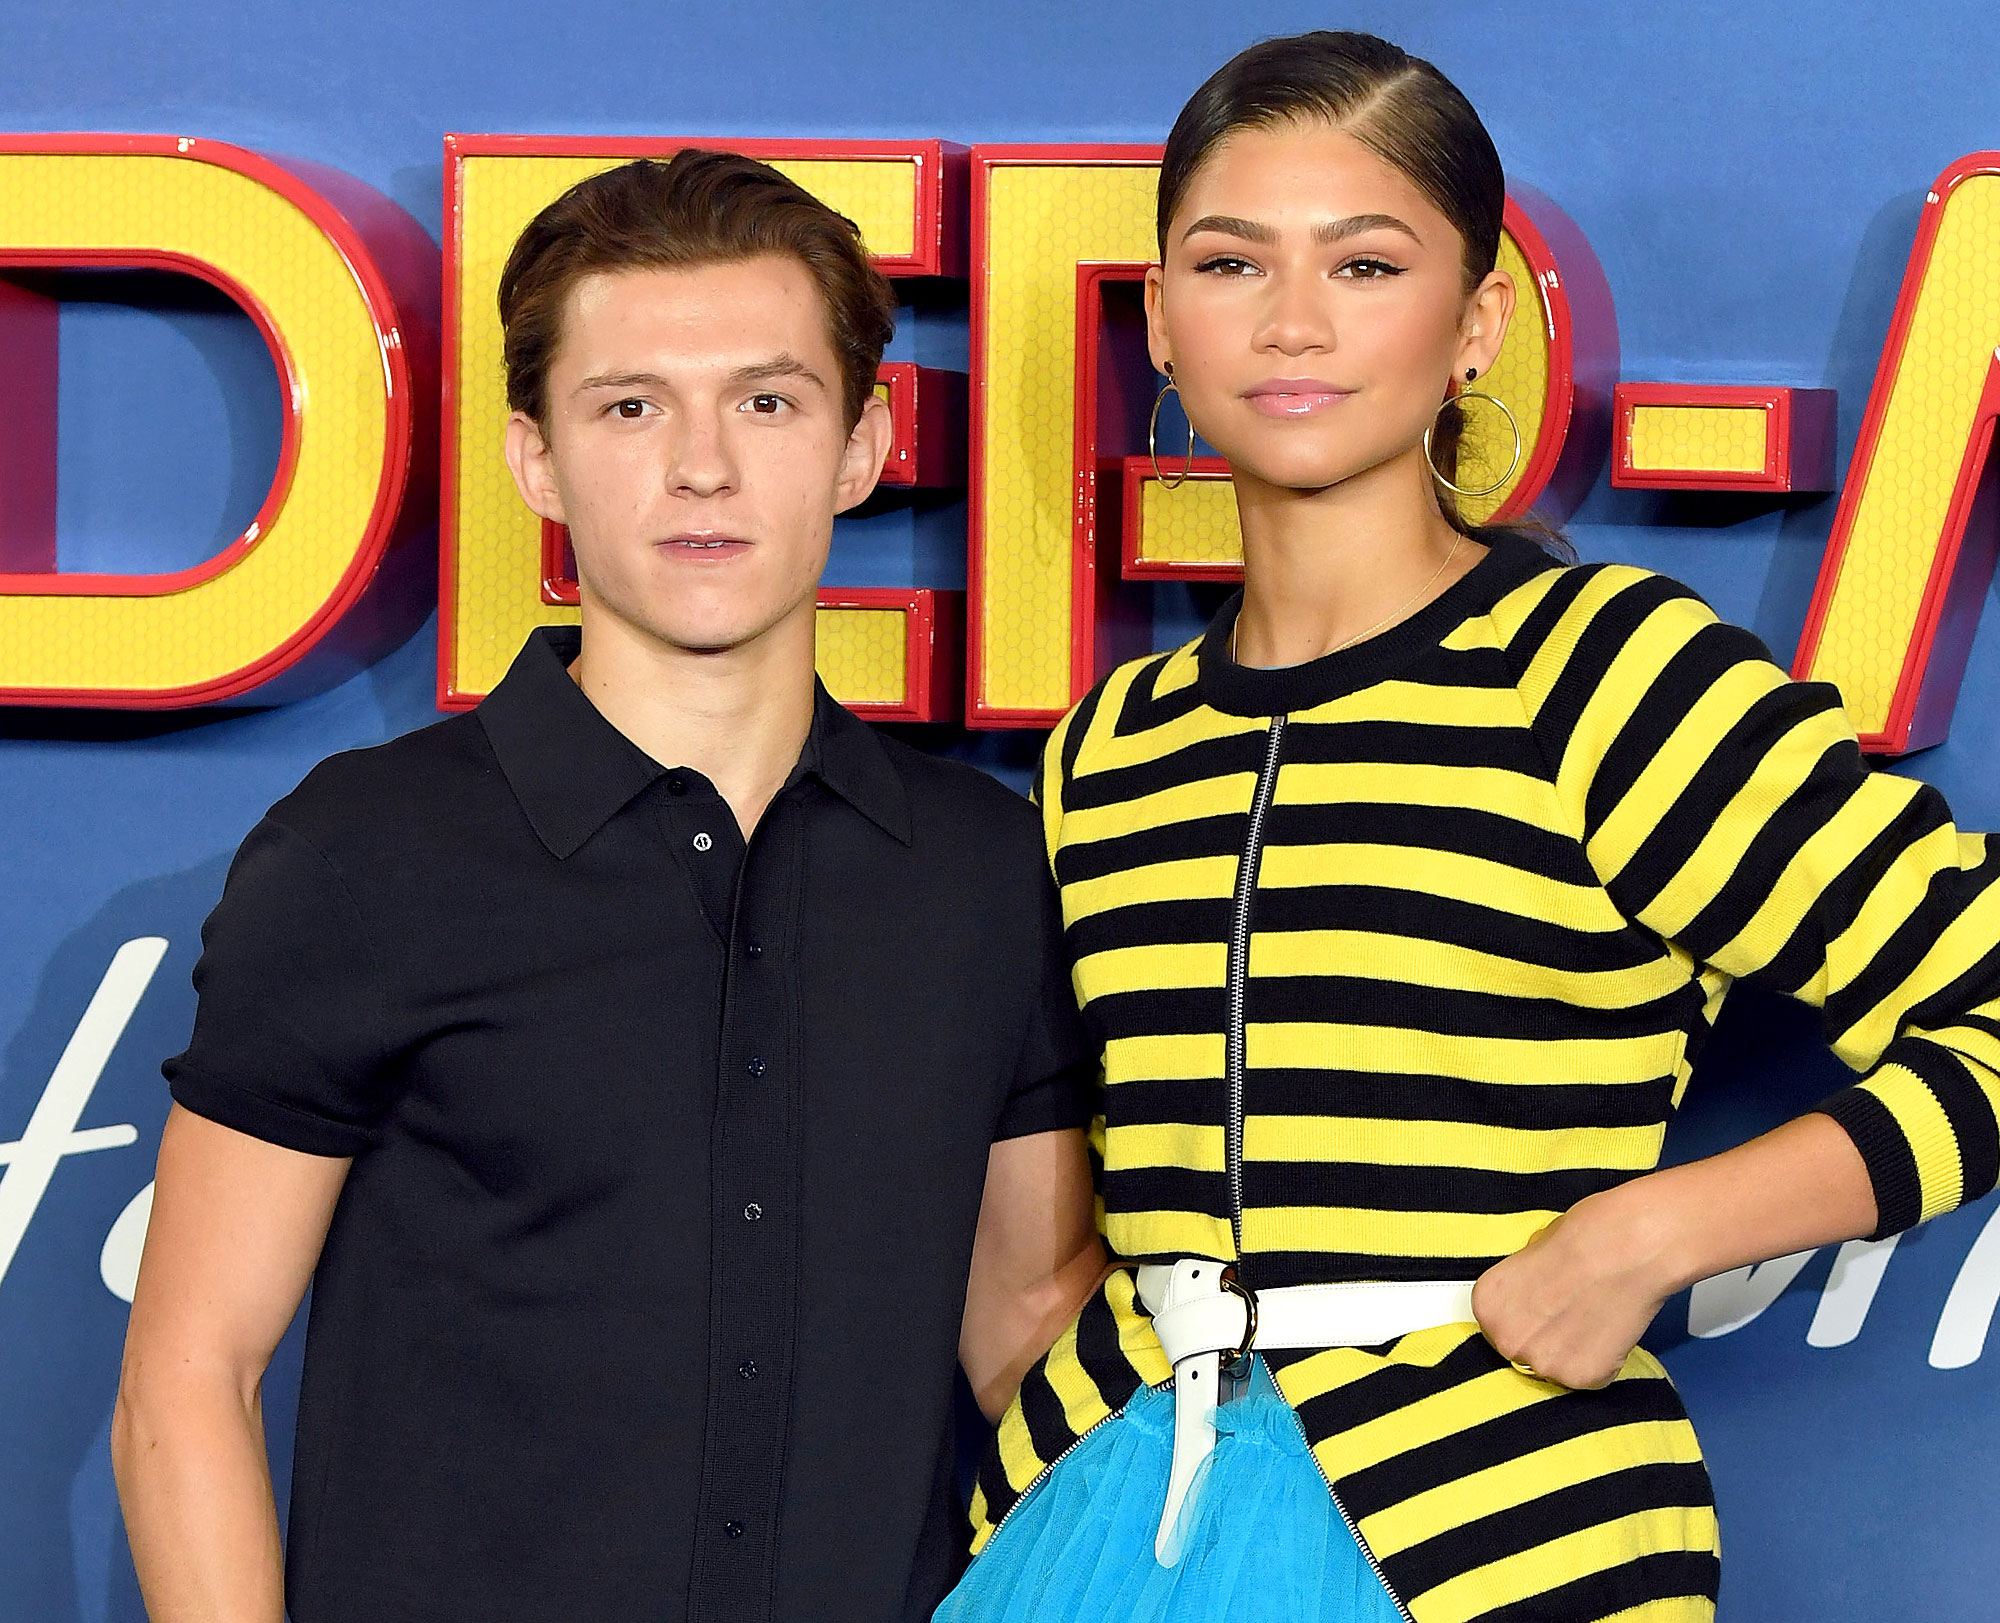 spider-man-hookups-zendaya-tom-3